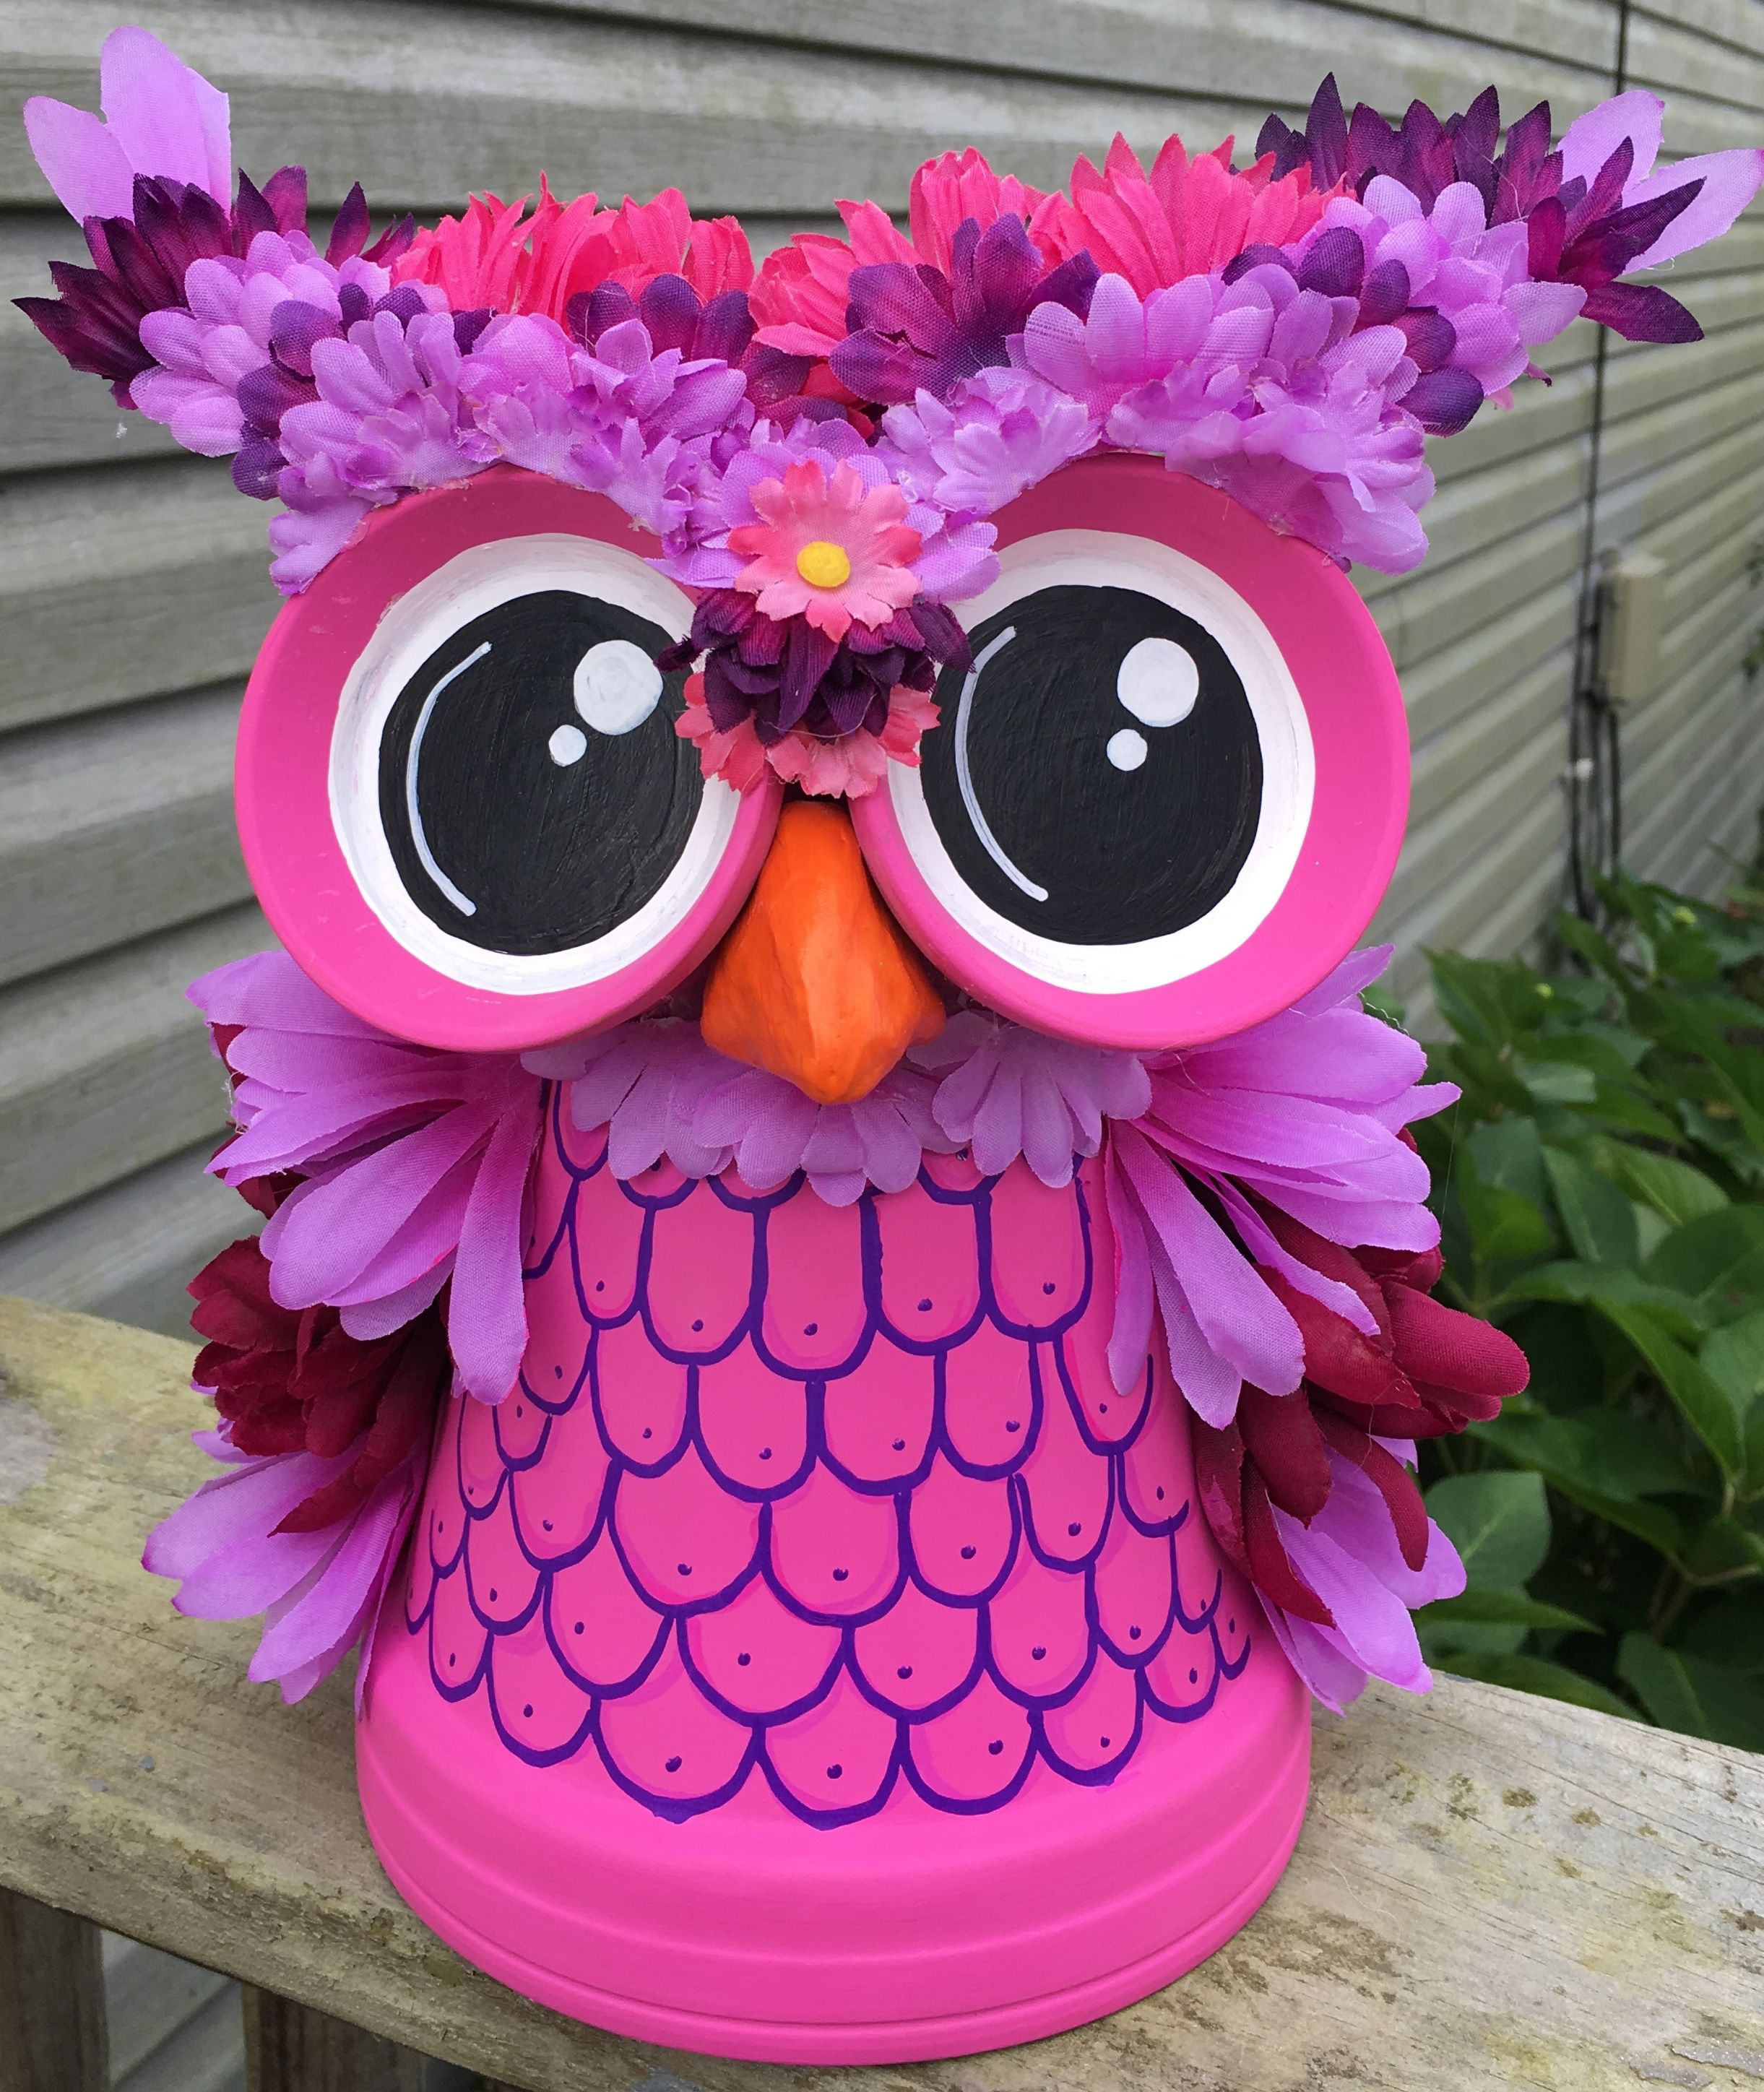 Made From Clay Pots Crafts: Whimsical Flower Pot Owl Made By Sandy Byerly At Family